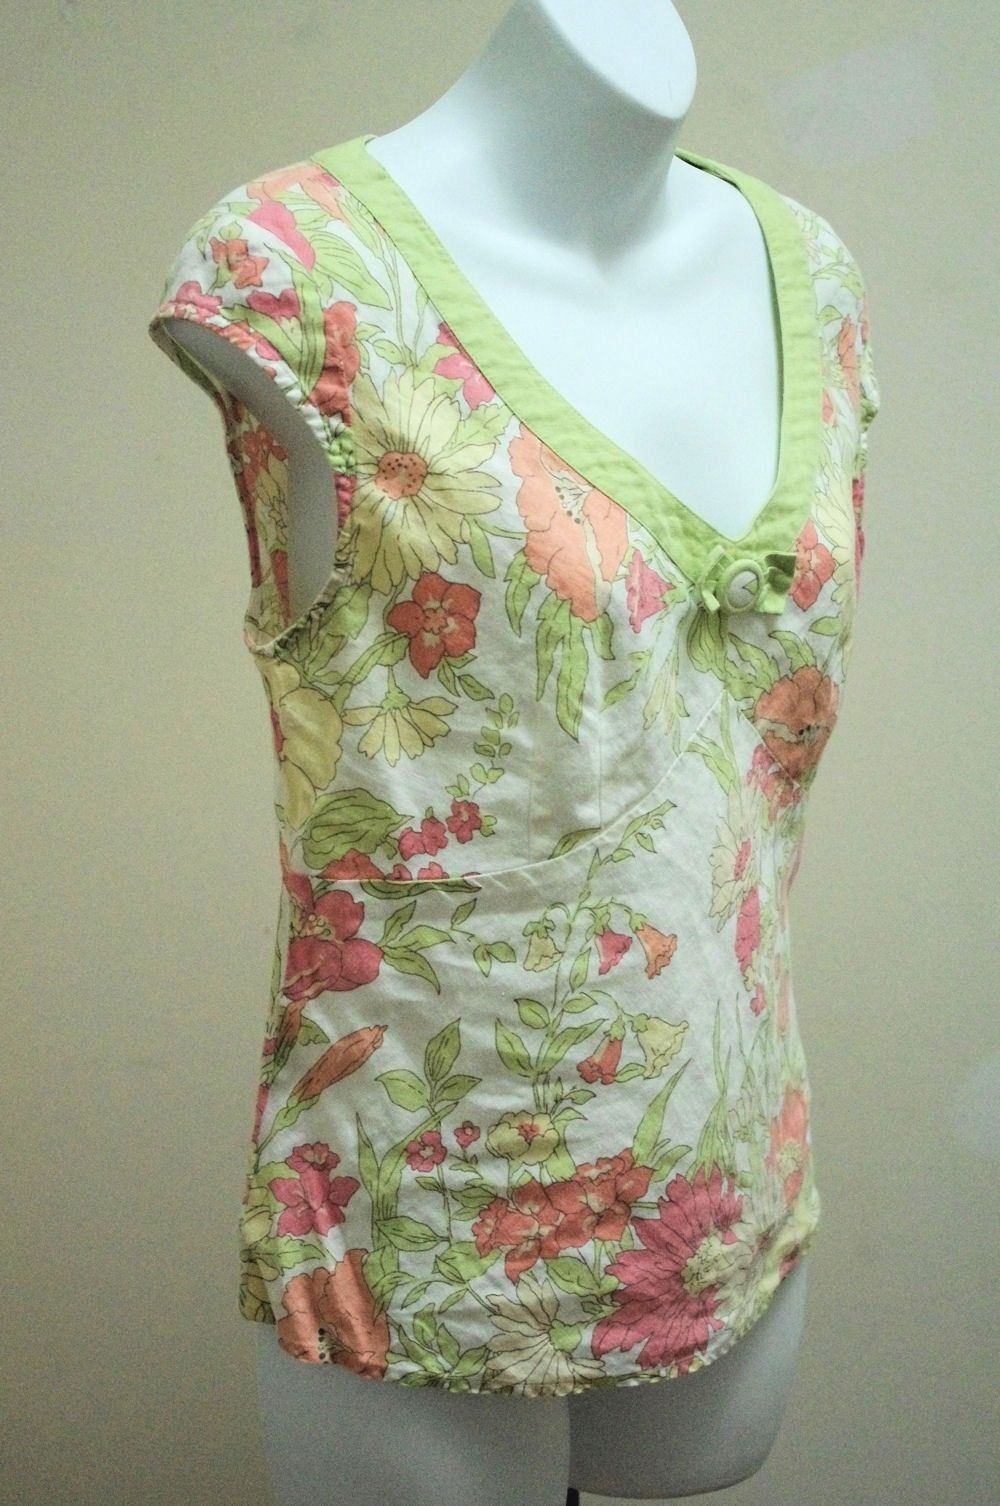 Ann Taylor Loft 6 S Top Pink Green Floral Linen Button Bow V Neck Cap Slv Shirt